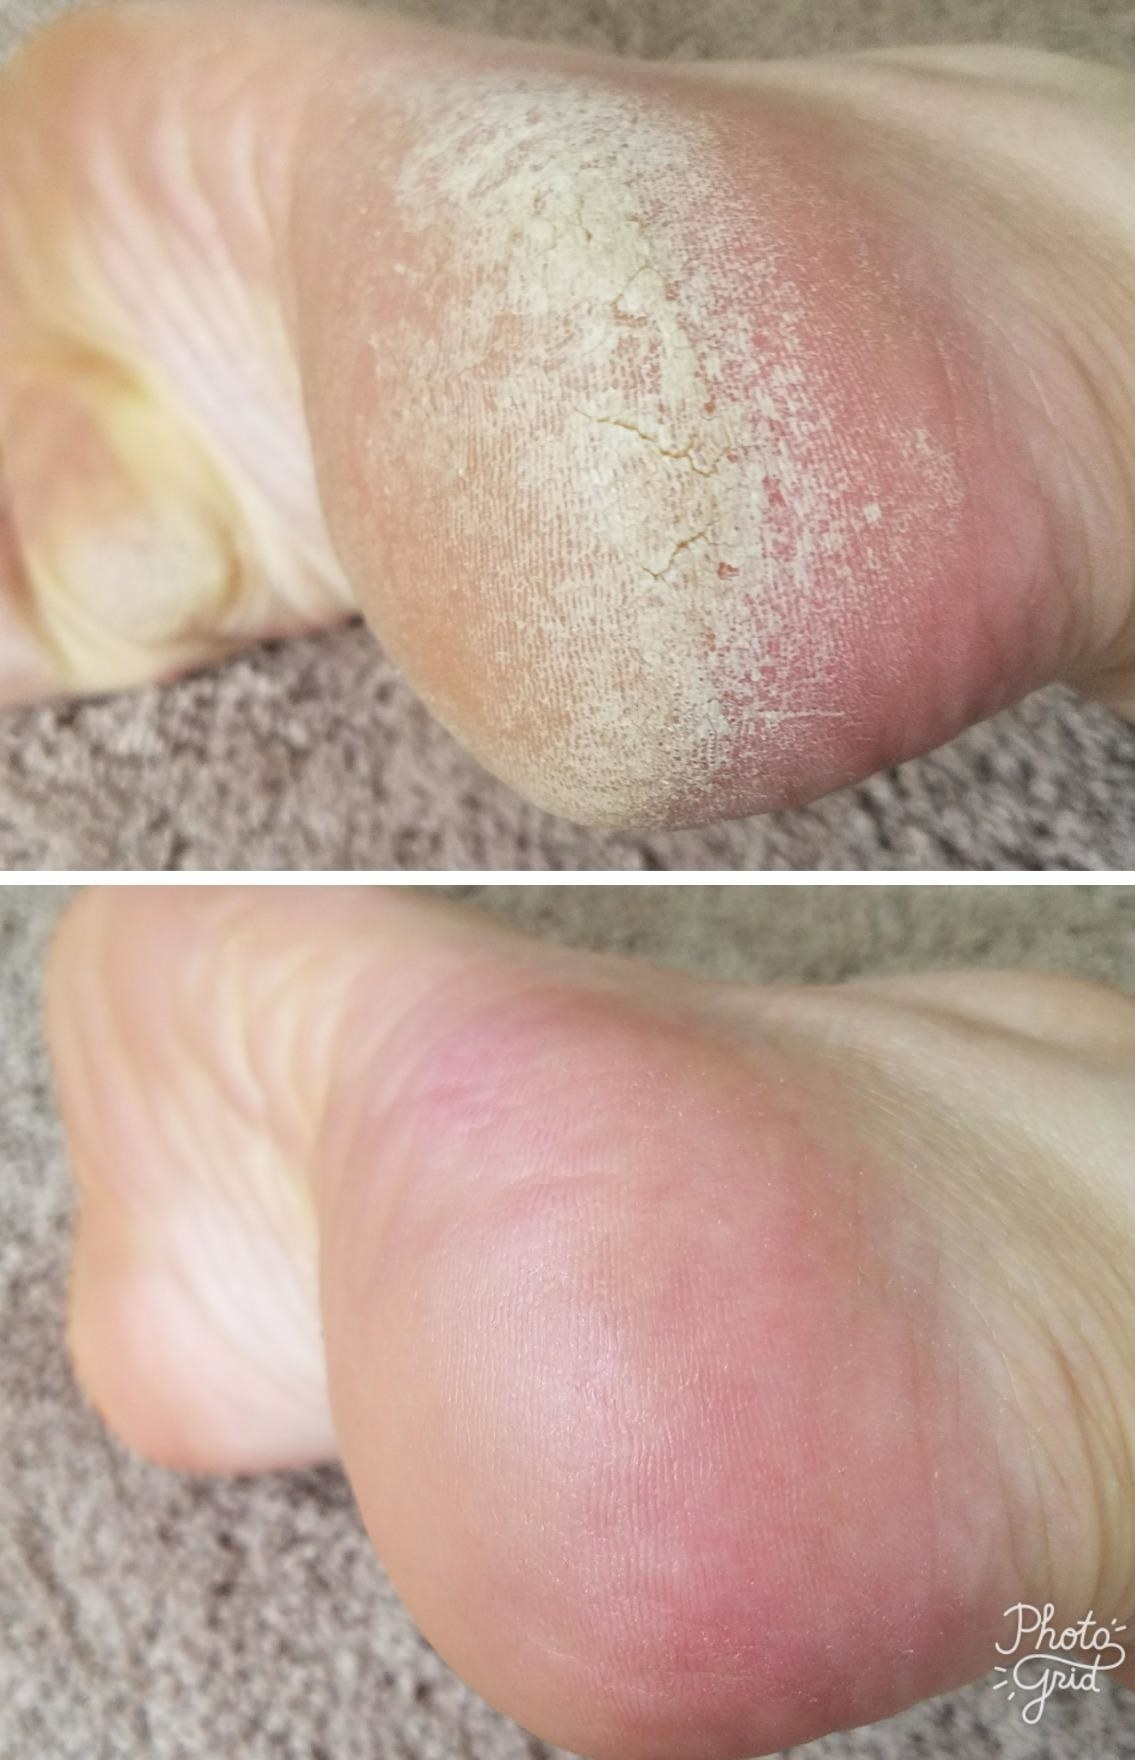 A reviewer's before/after of a callused heel and a smooth heel after use